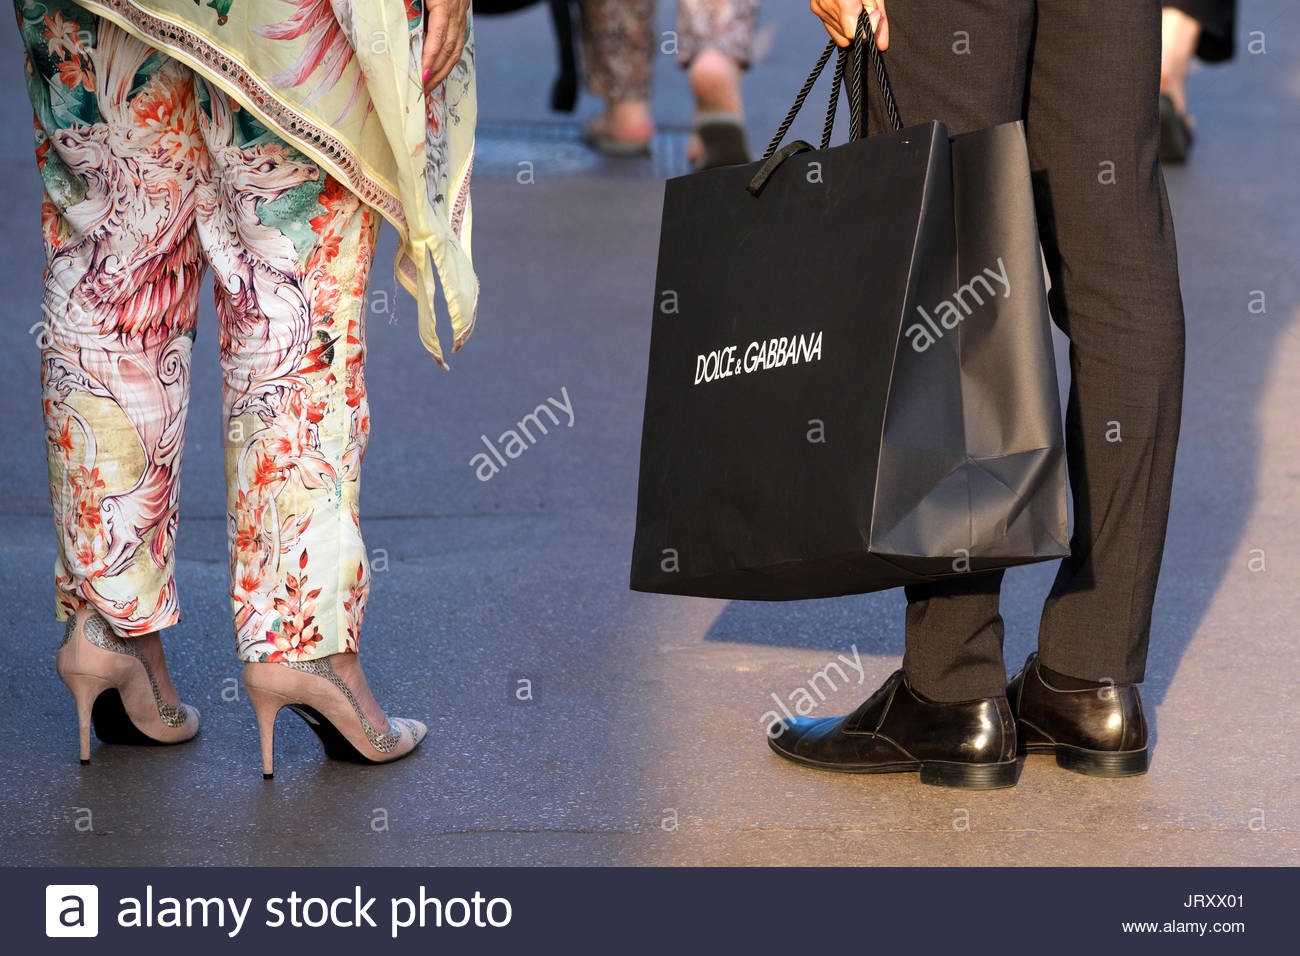 A personal assistant for the Dolci & Gabbana stoe in Cannes, France carry's a shopping bag of purchases - Stock Image